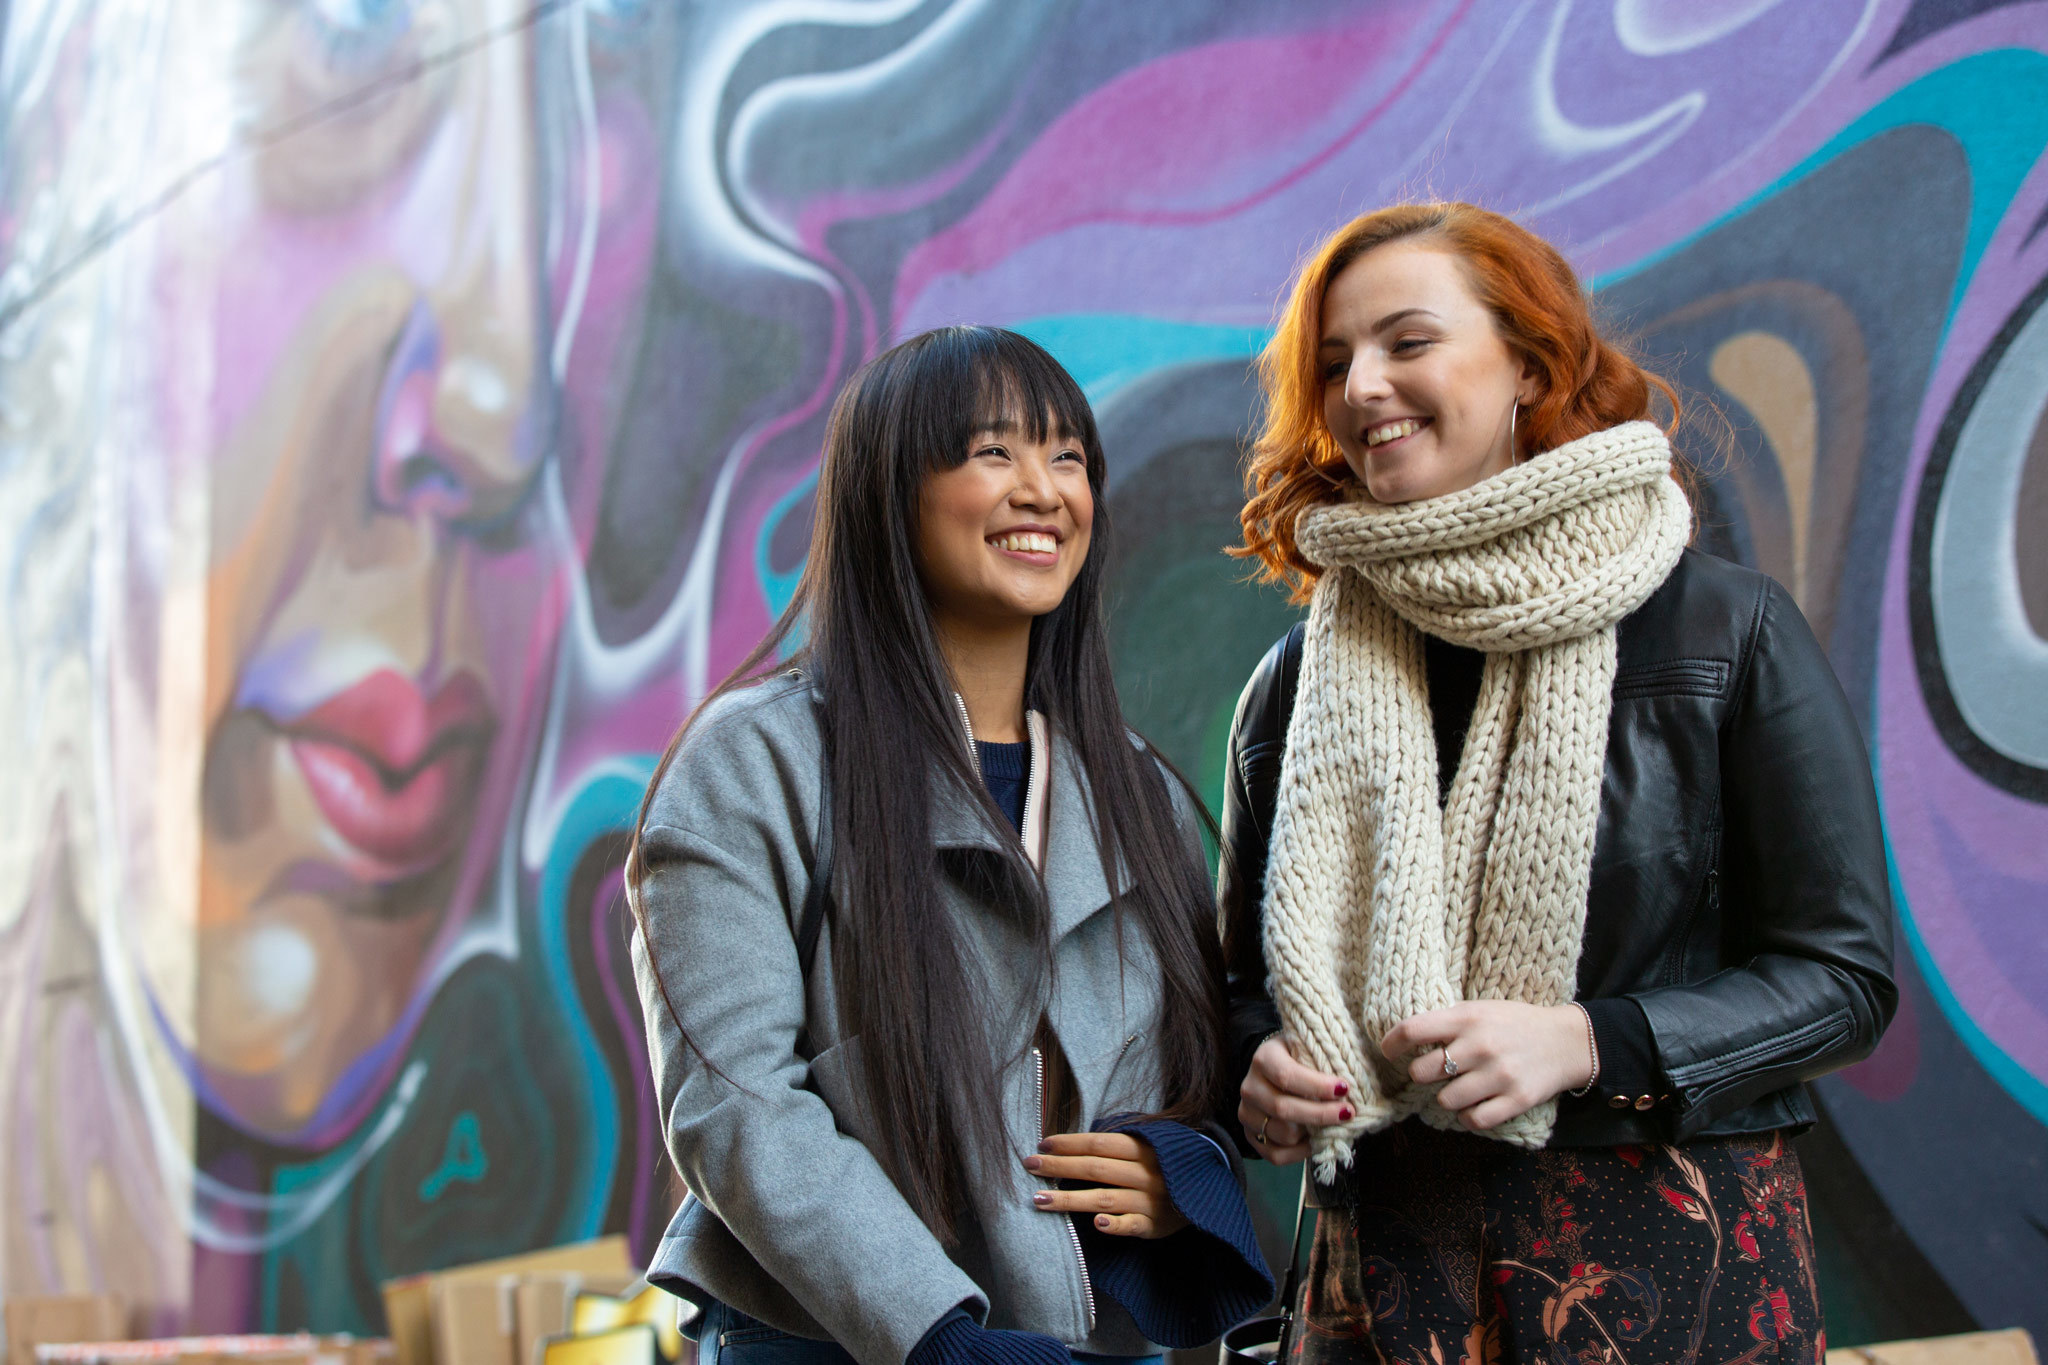 Women laughing in front of a street art mural in Adelaide